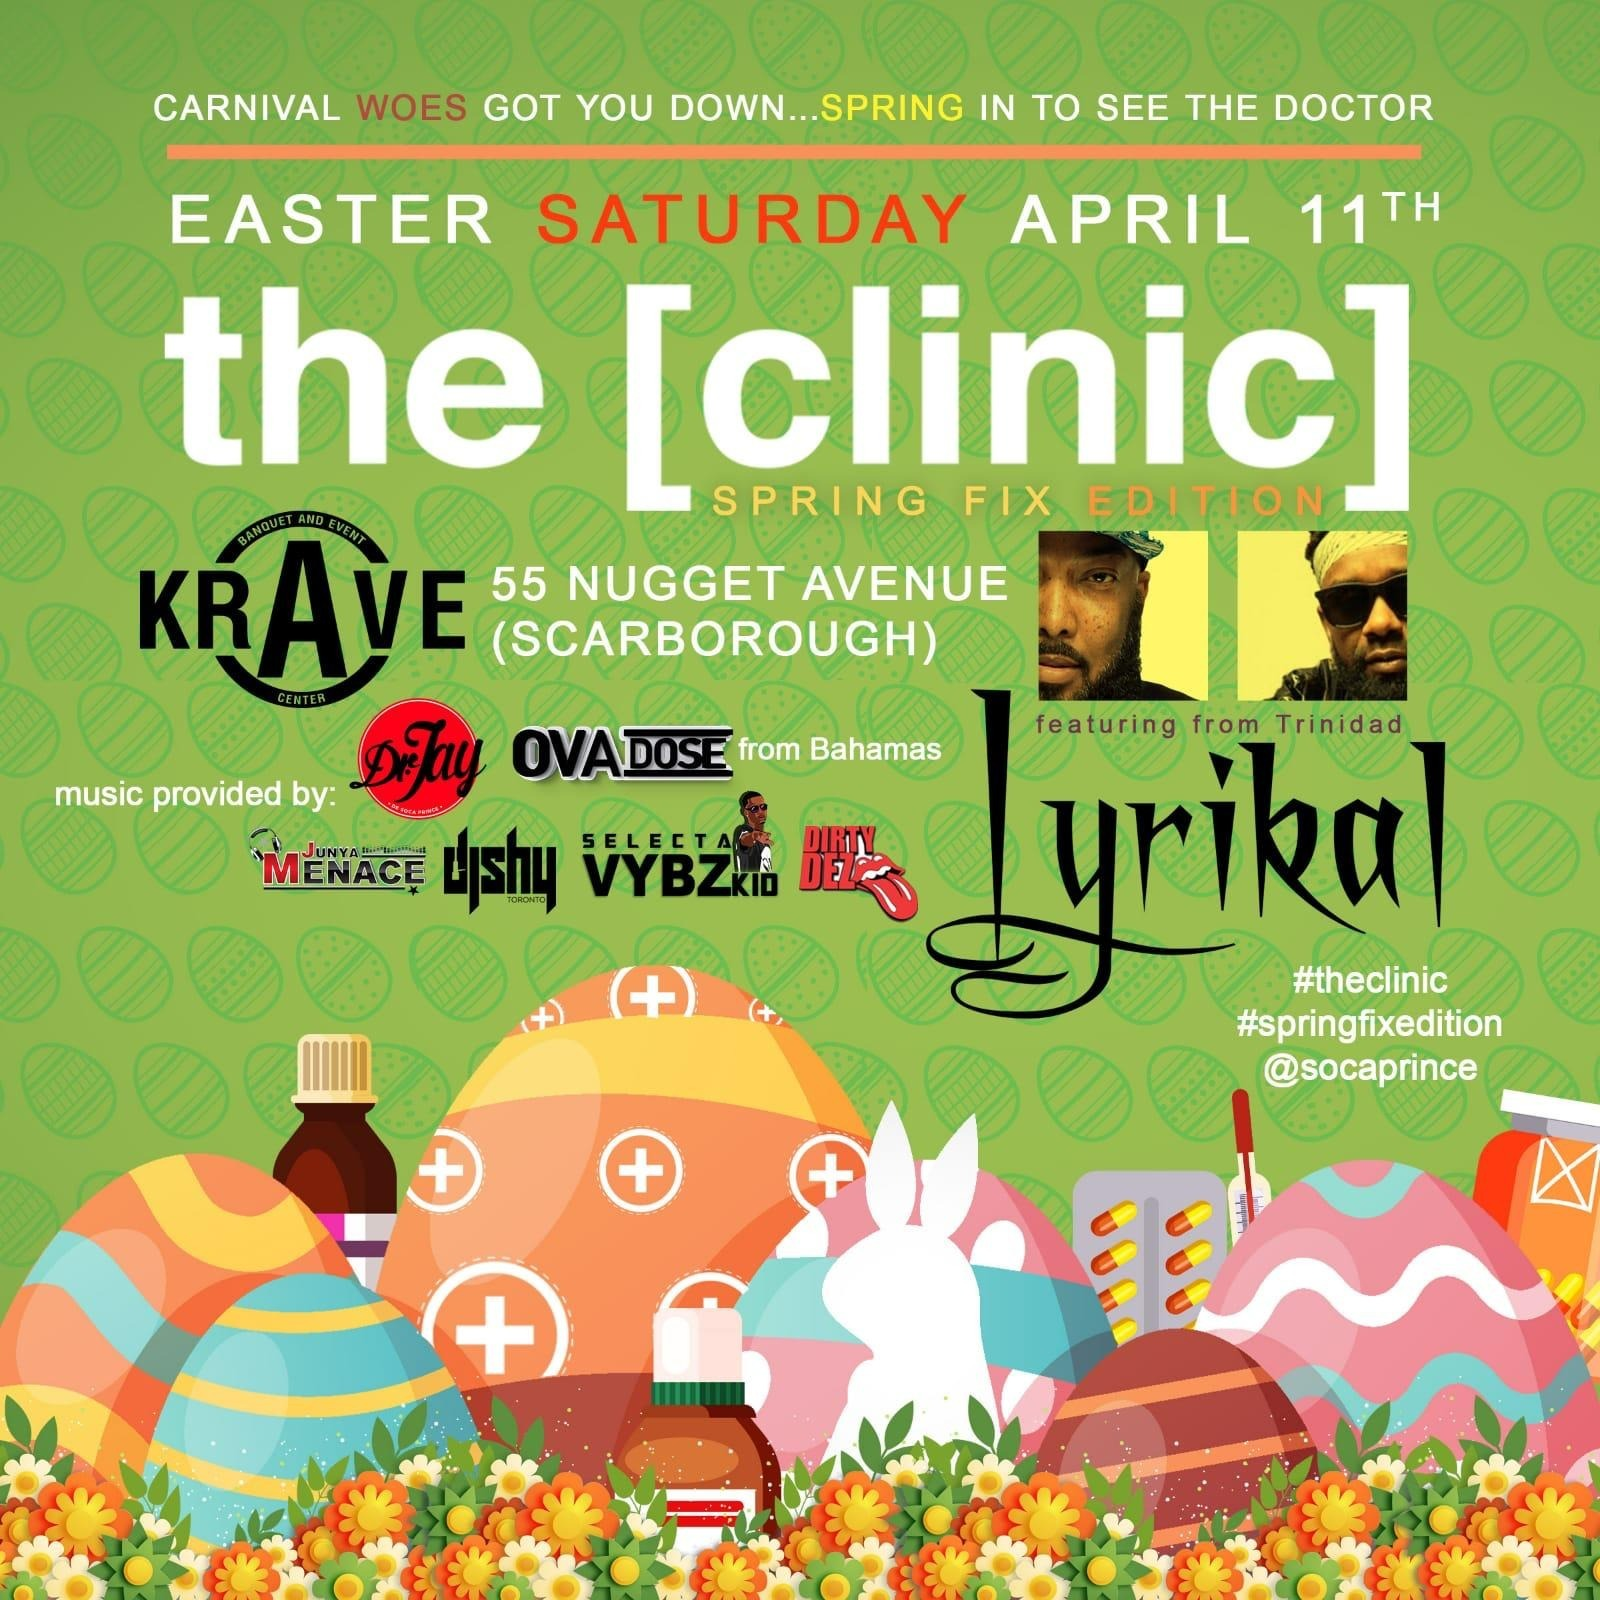 The Clinic - Spring Edition